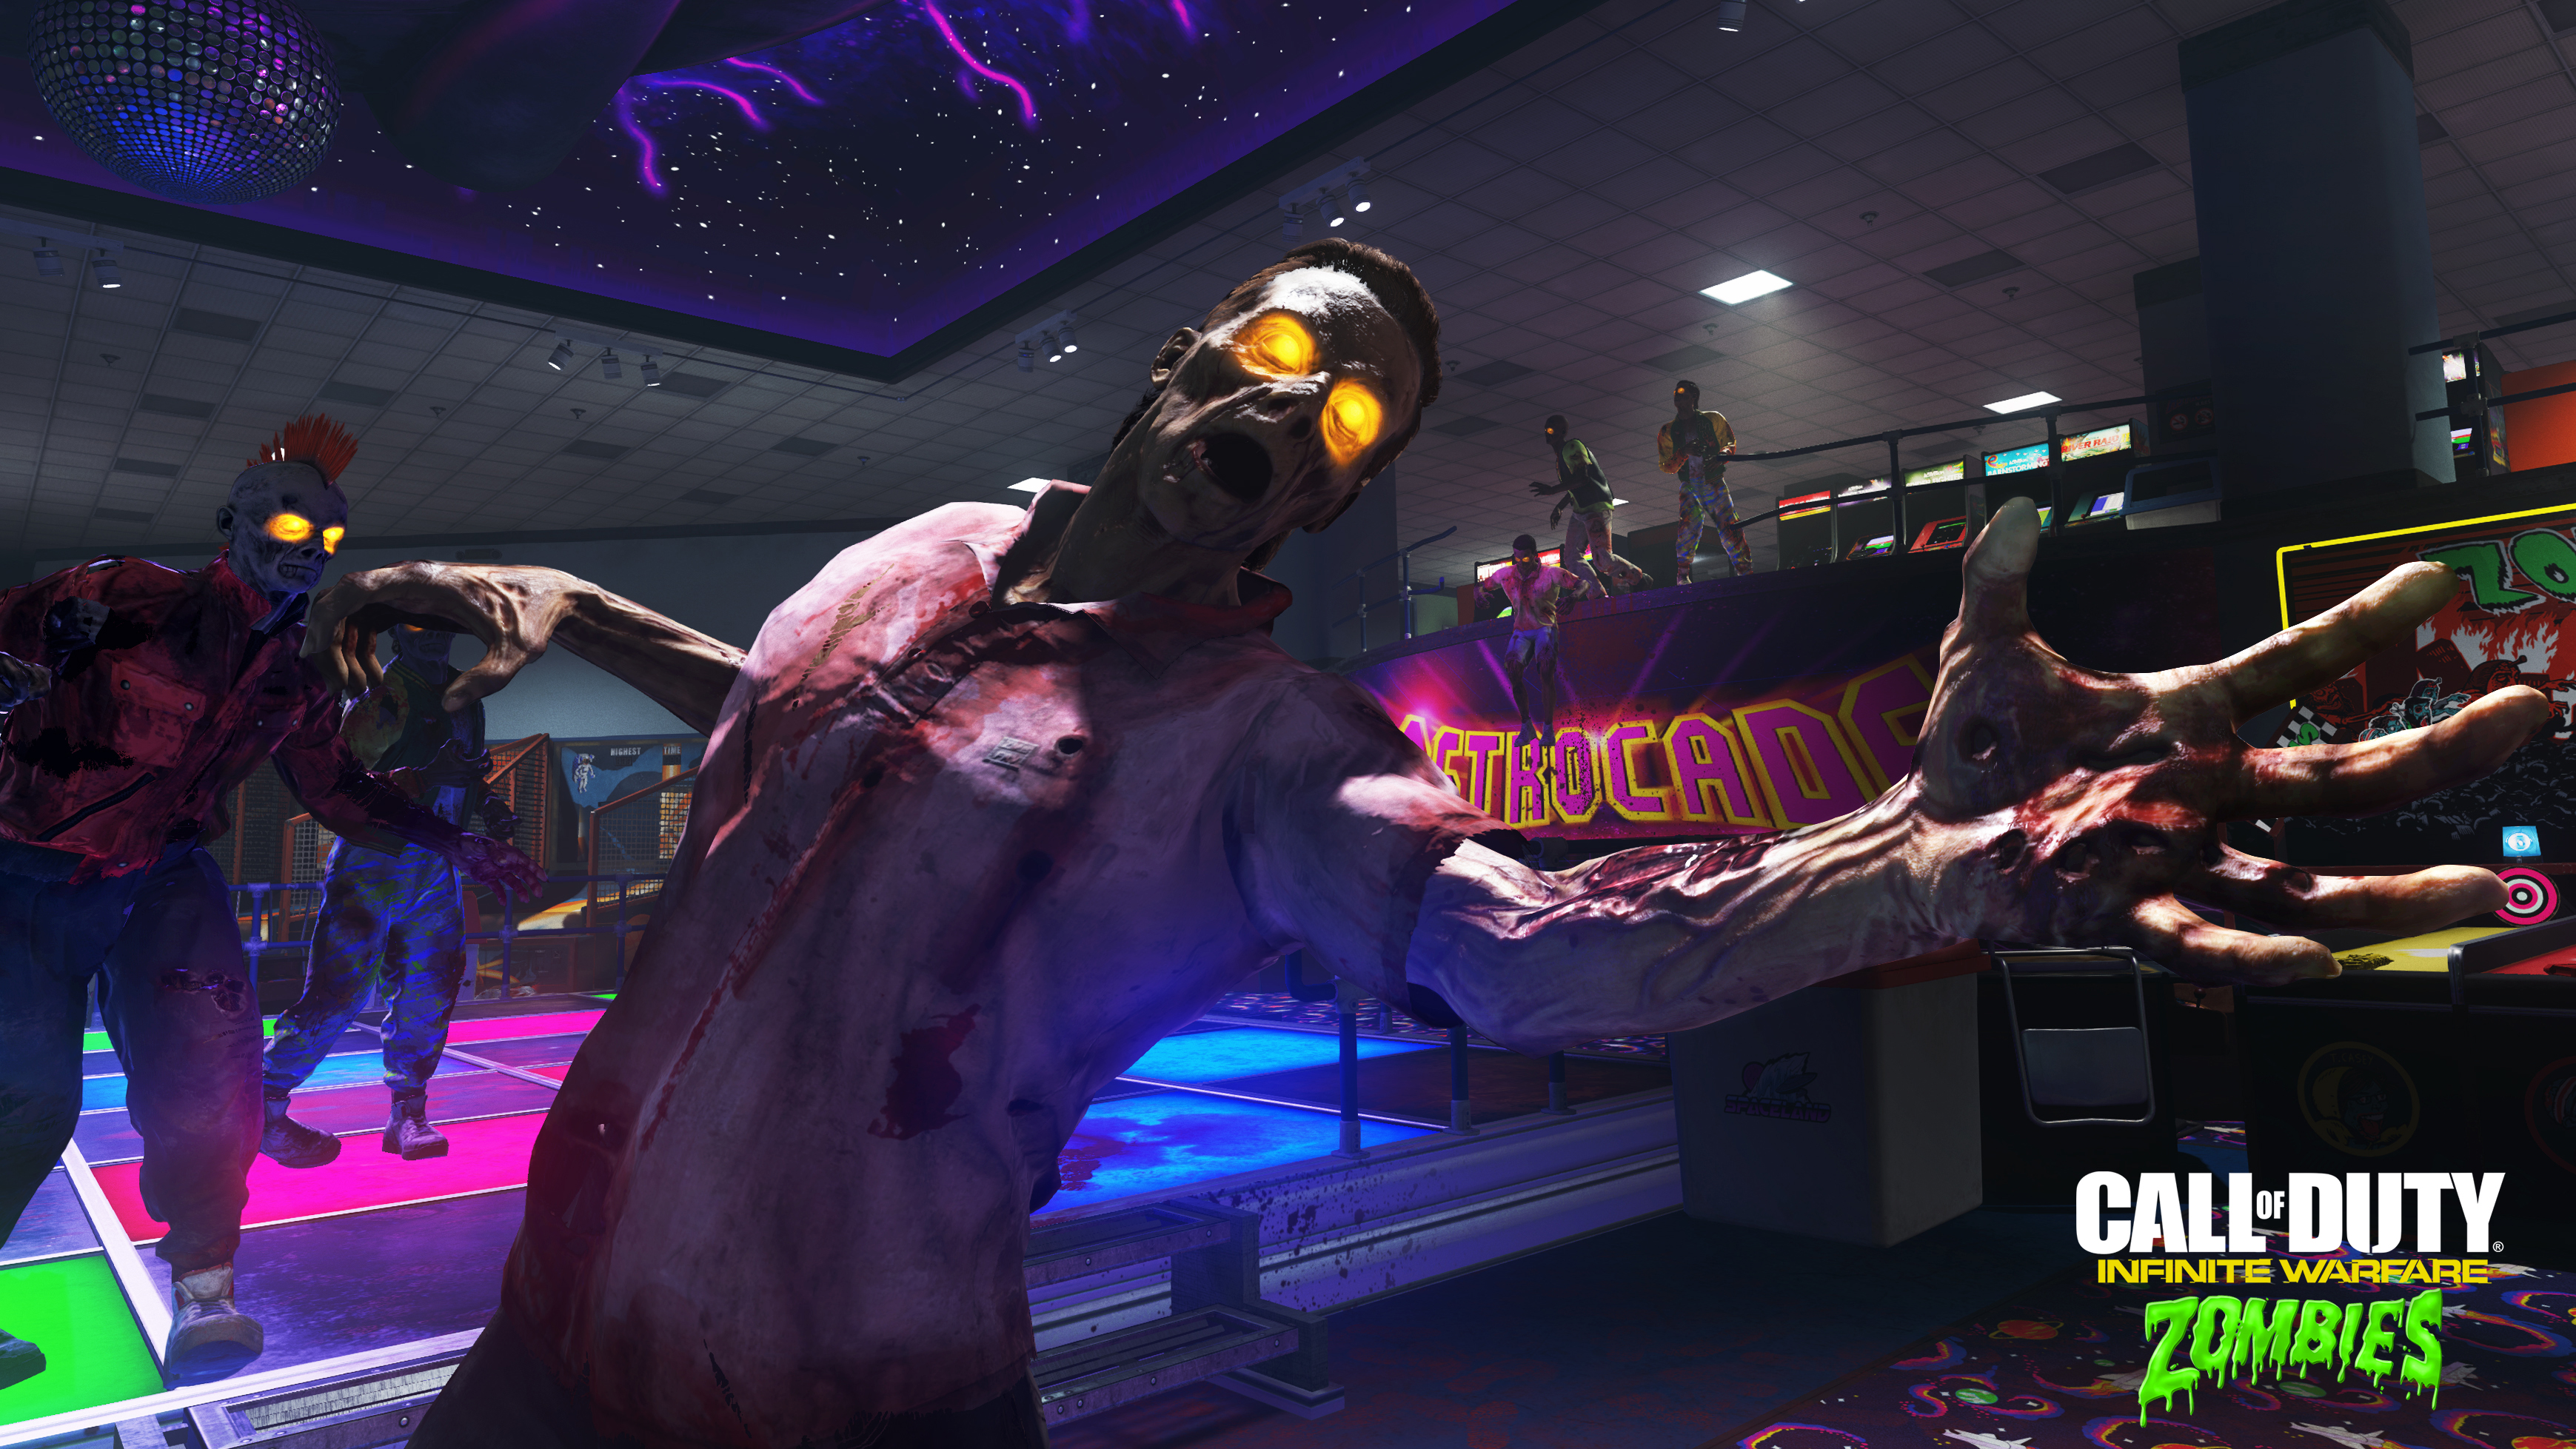 COD-Infinite-Warfare_Zombies-in-Spaceland-3_WM